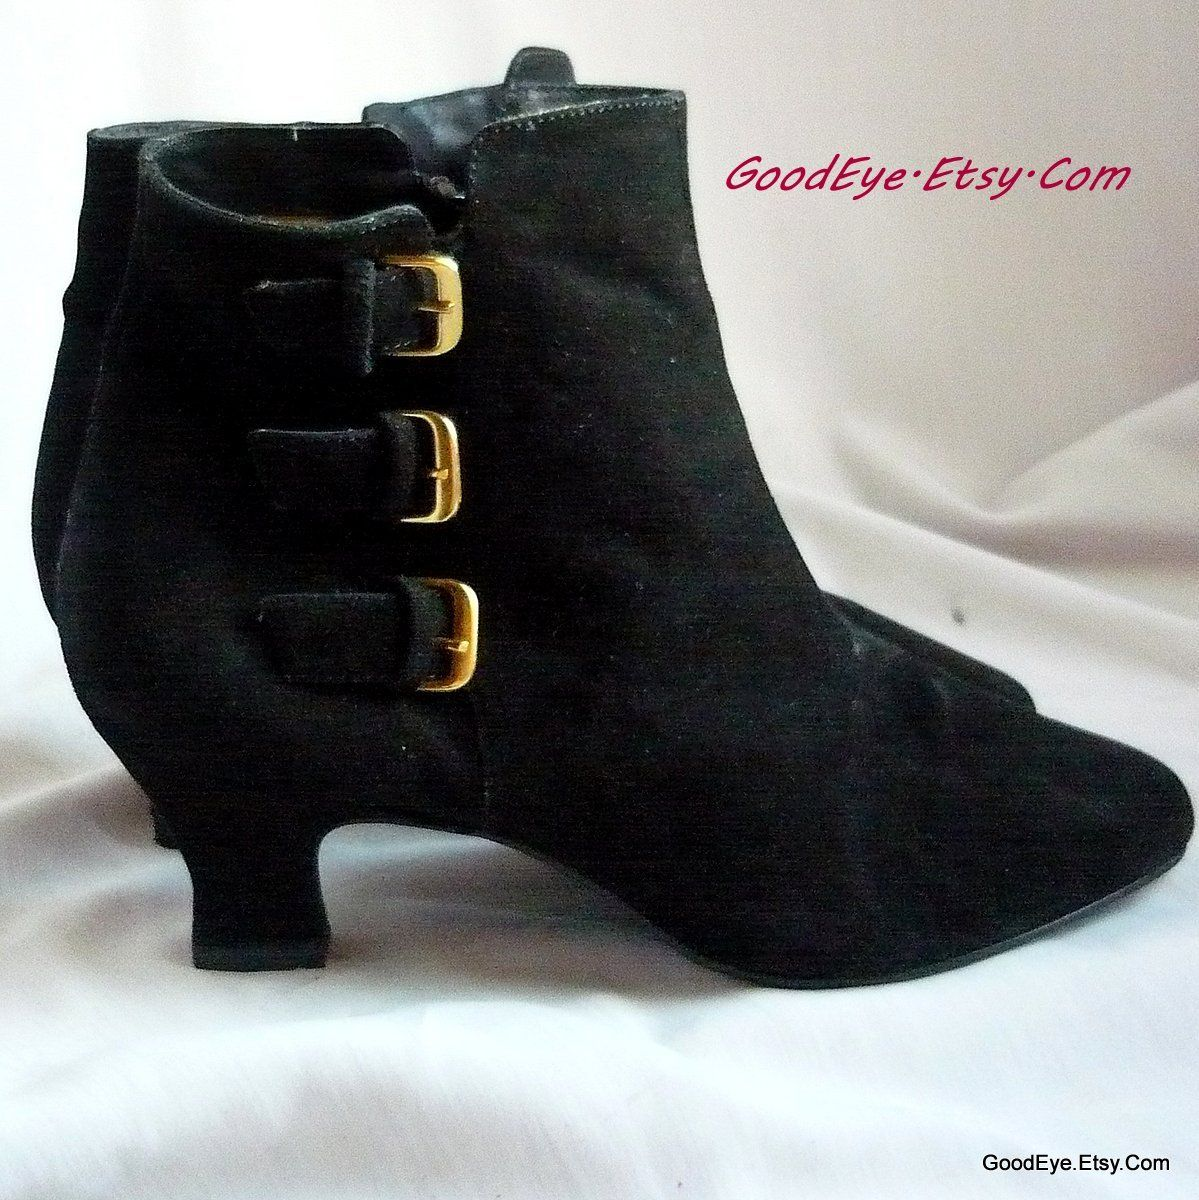 Enzo Granny Ankle Boots Size 6 5 Eu 37 Uk 3 5 90s Punk Pixie Kitten Heel Shoes Made Brazil Black Suede Leather Kitten Heel Shoes Boots Vintage Boots